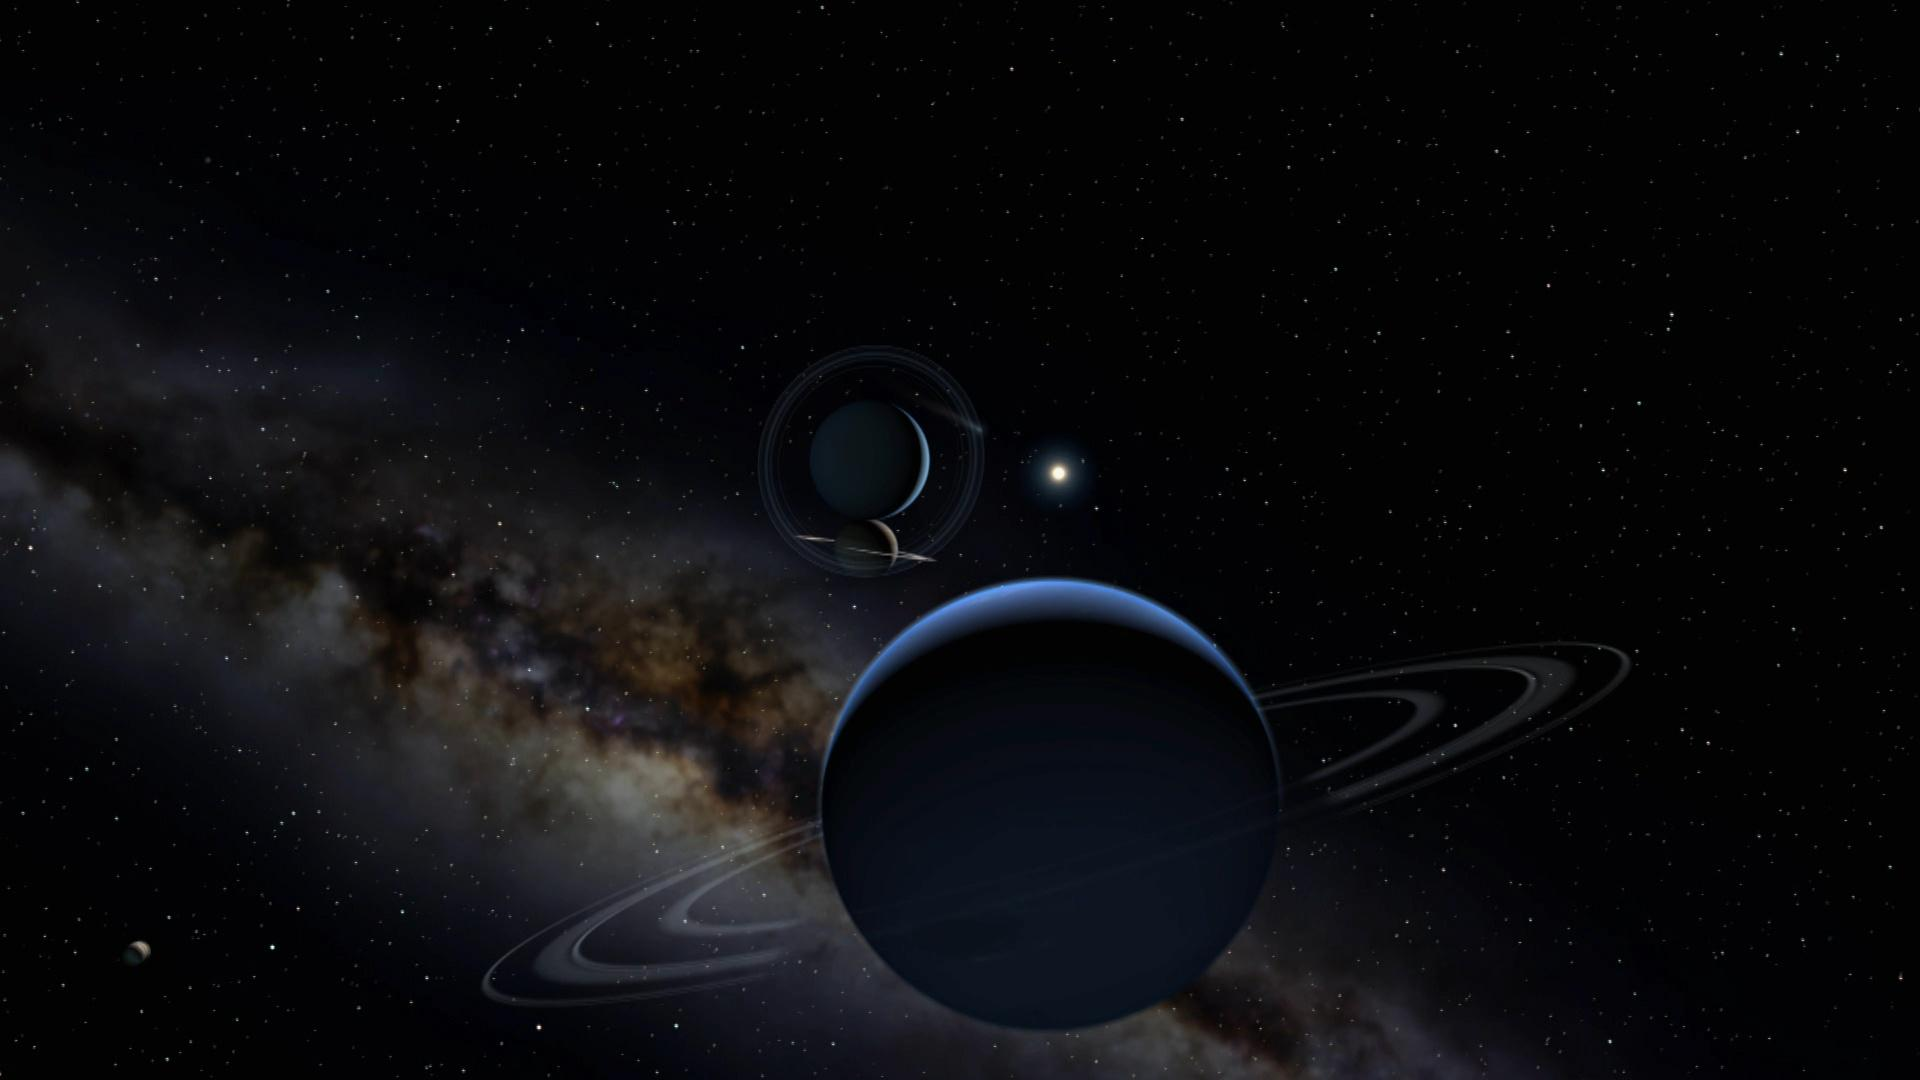 The 170-Year Search for a Planet Beyond Neptune Hero